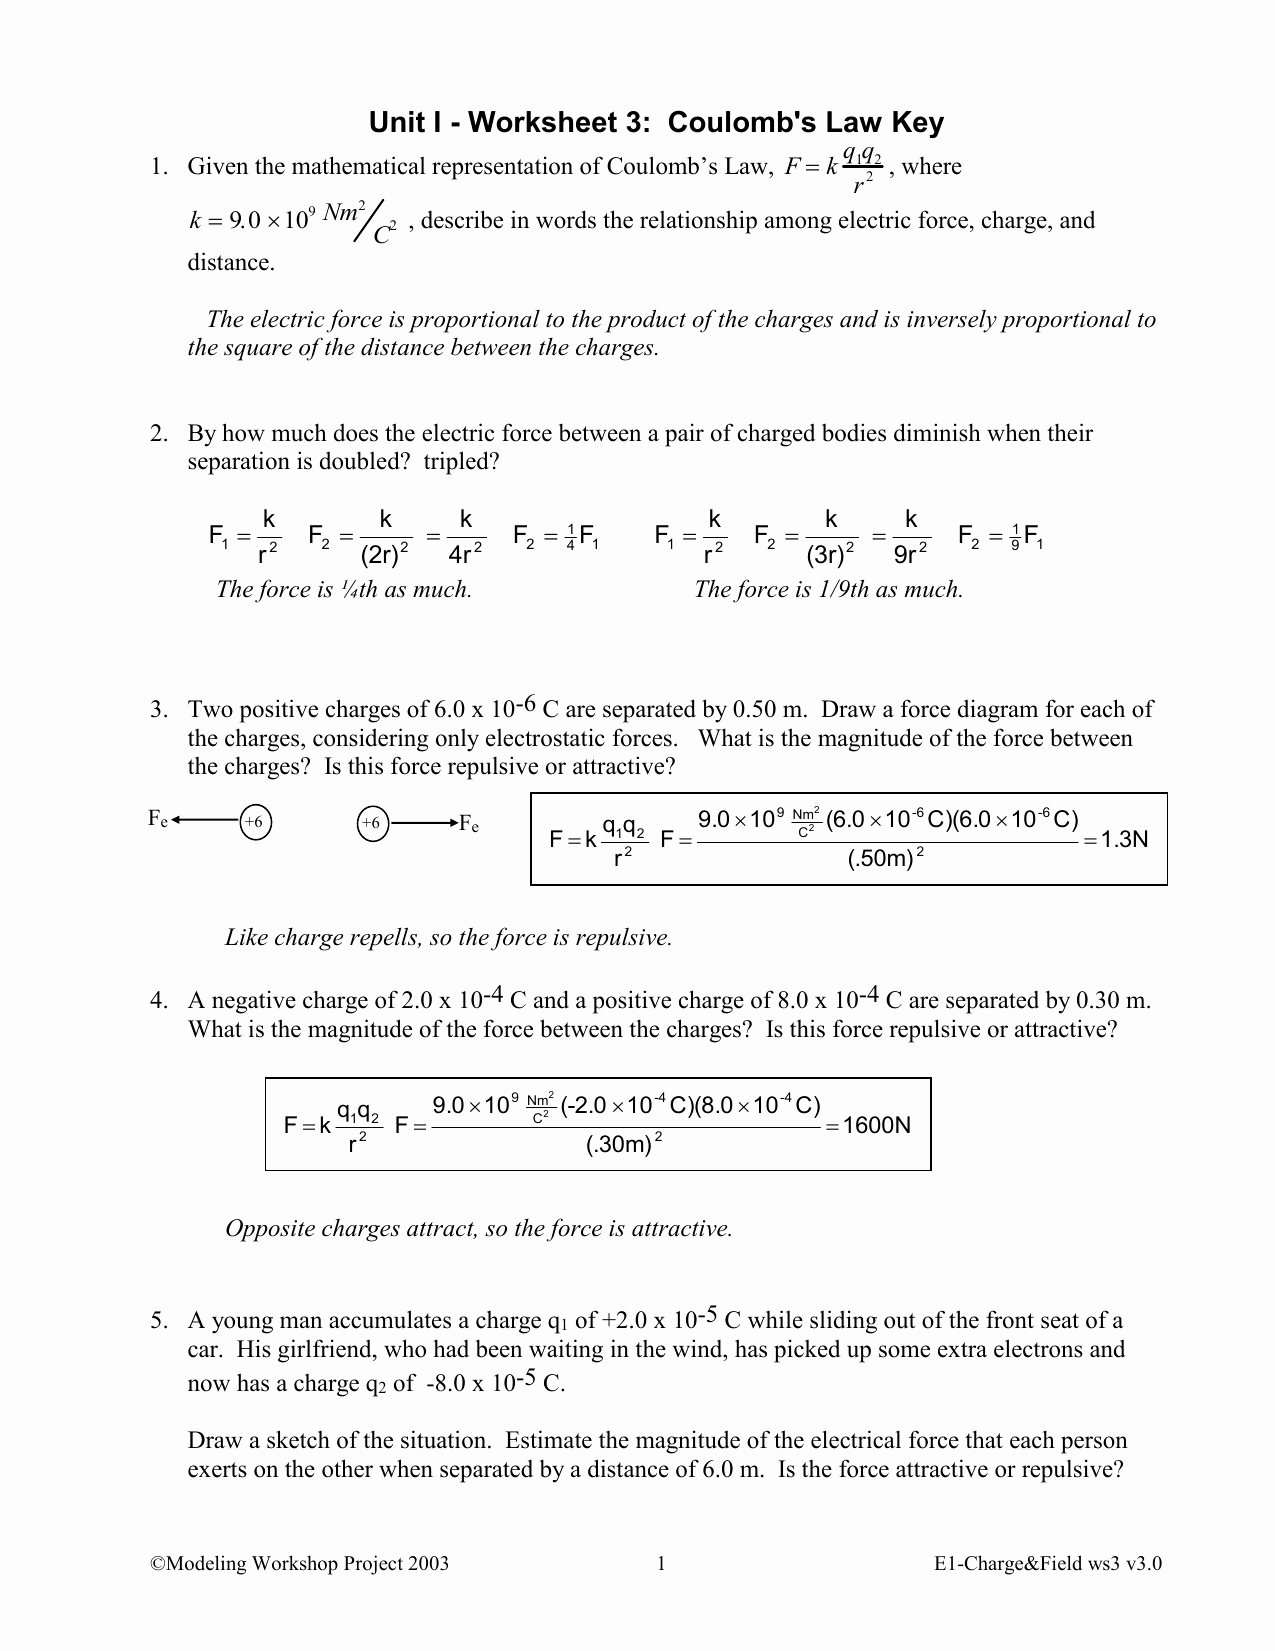 Newton's Laws Review Worksheet Answers Best Of Coulombs Law Worksheet Answers 1